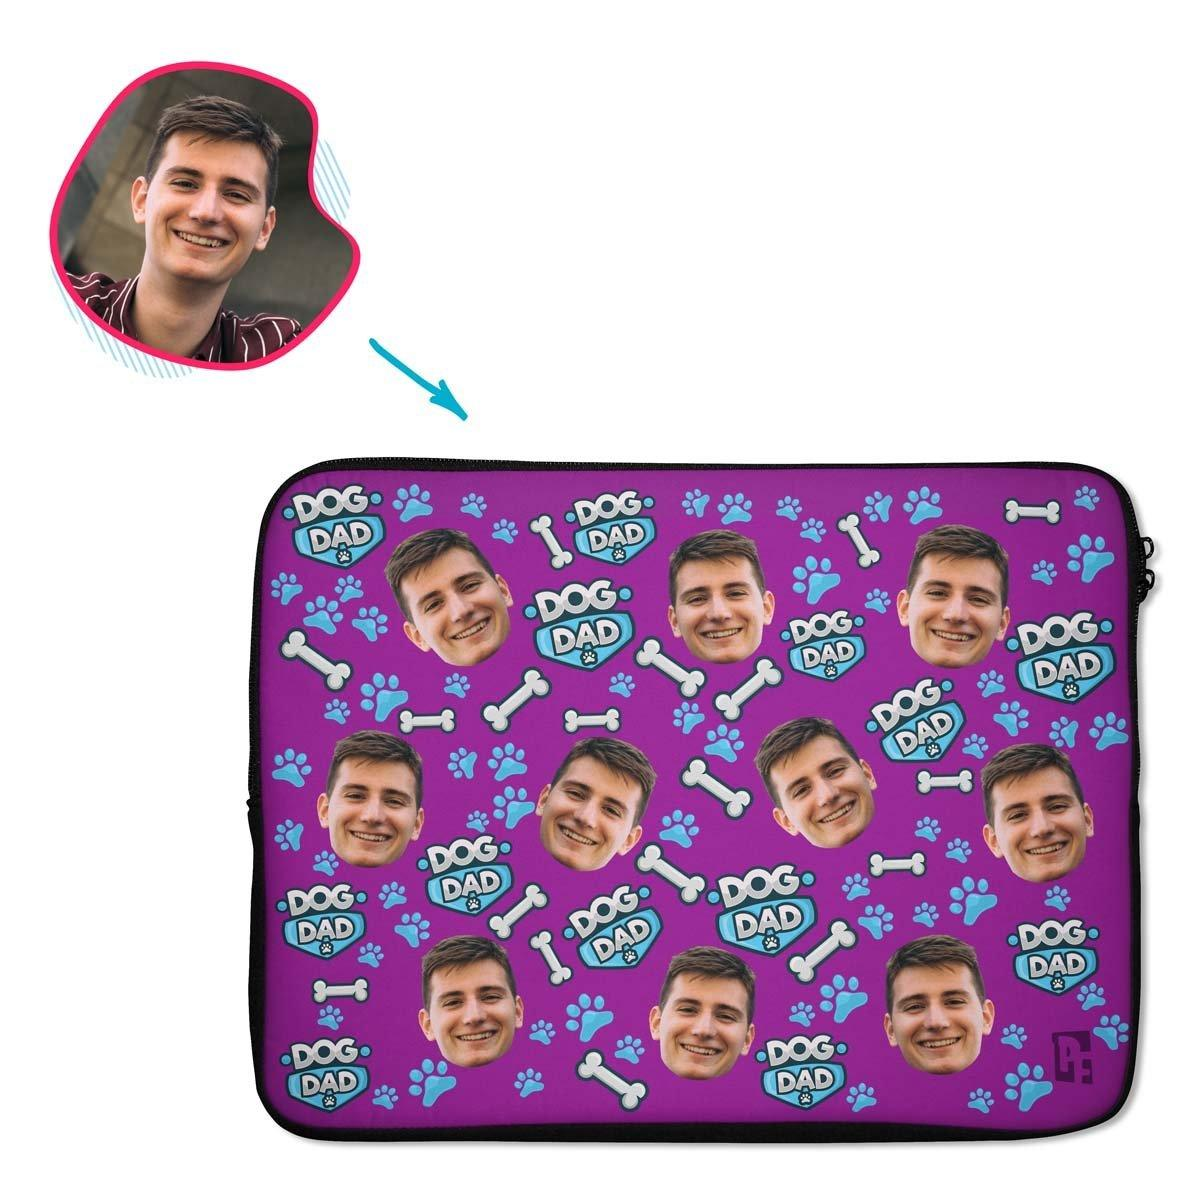 purple Dog Dad laptop sleeve personalized with photo of face printed on them